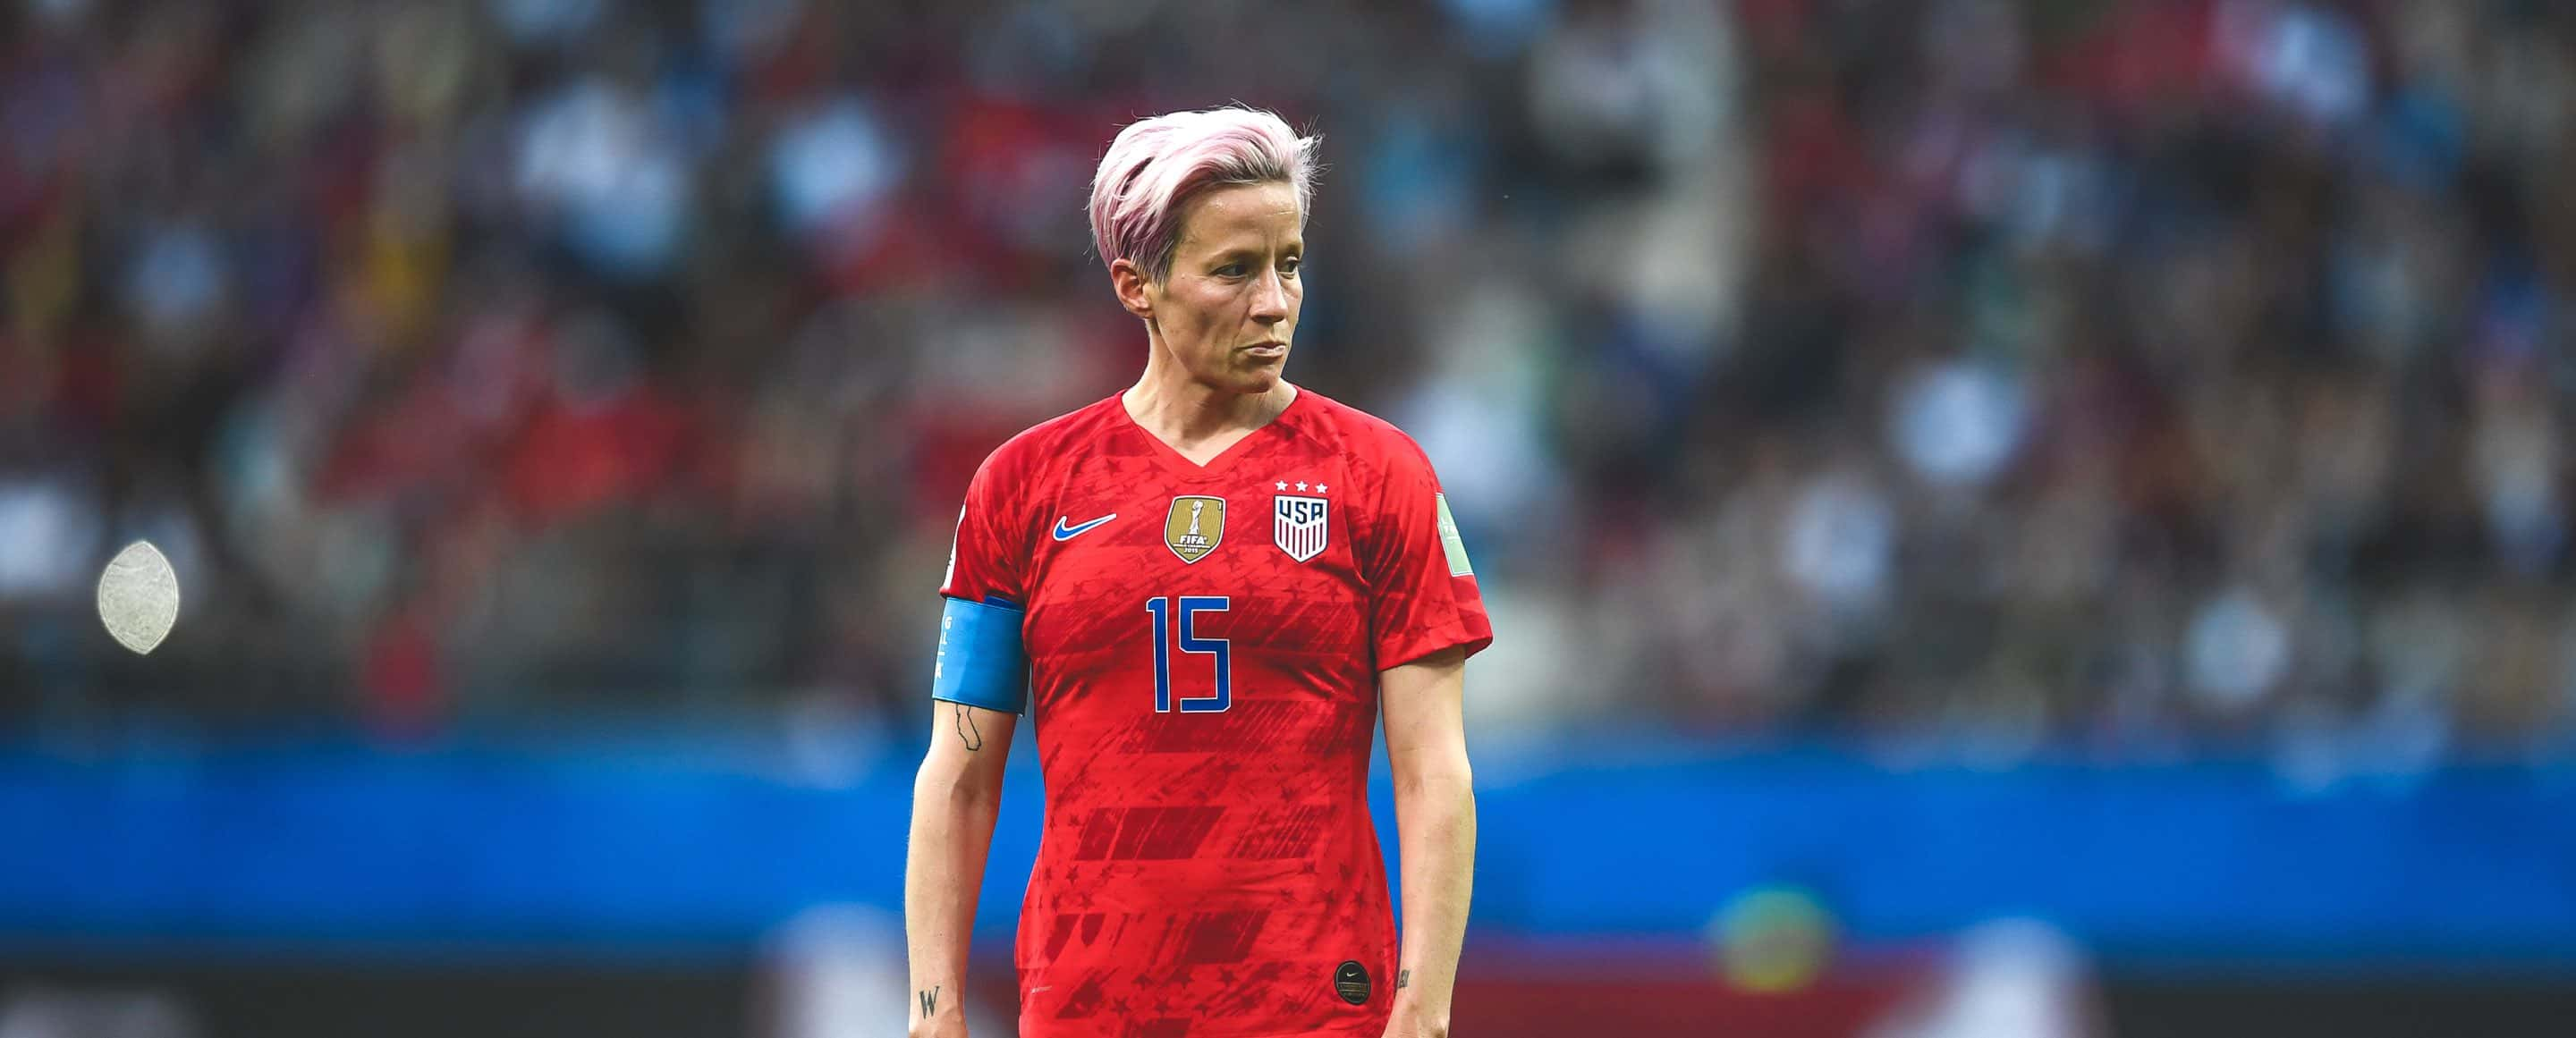 50d129075 FIFA Women's World Cup 2019: USA vs. Spain - Preview, Schedule, TV Channels  & Start Time